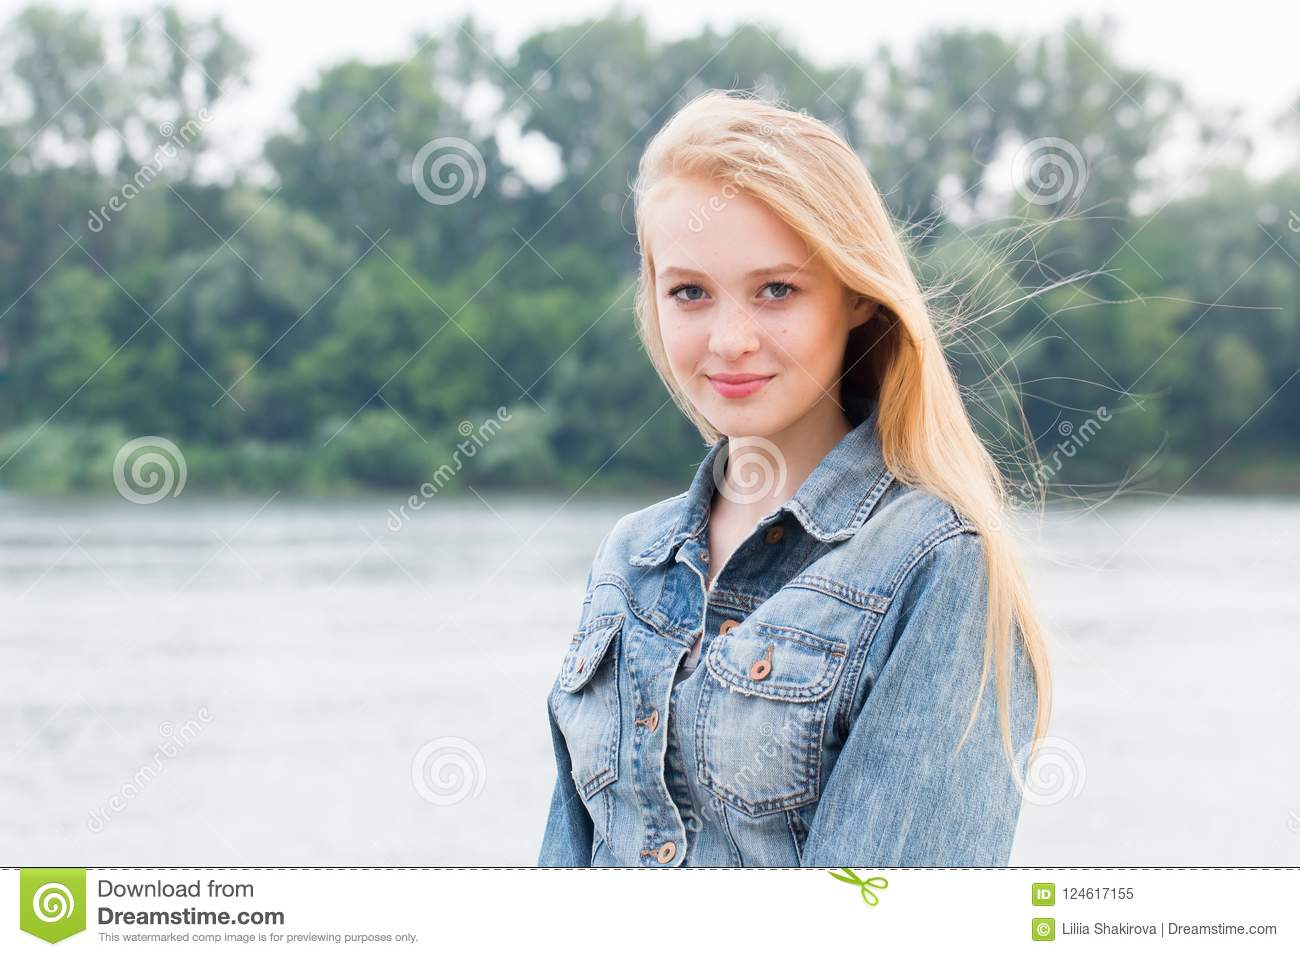 Beautiful young blonde woman in blue jeans with smile looking at camera on nature